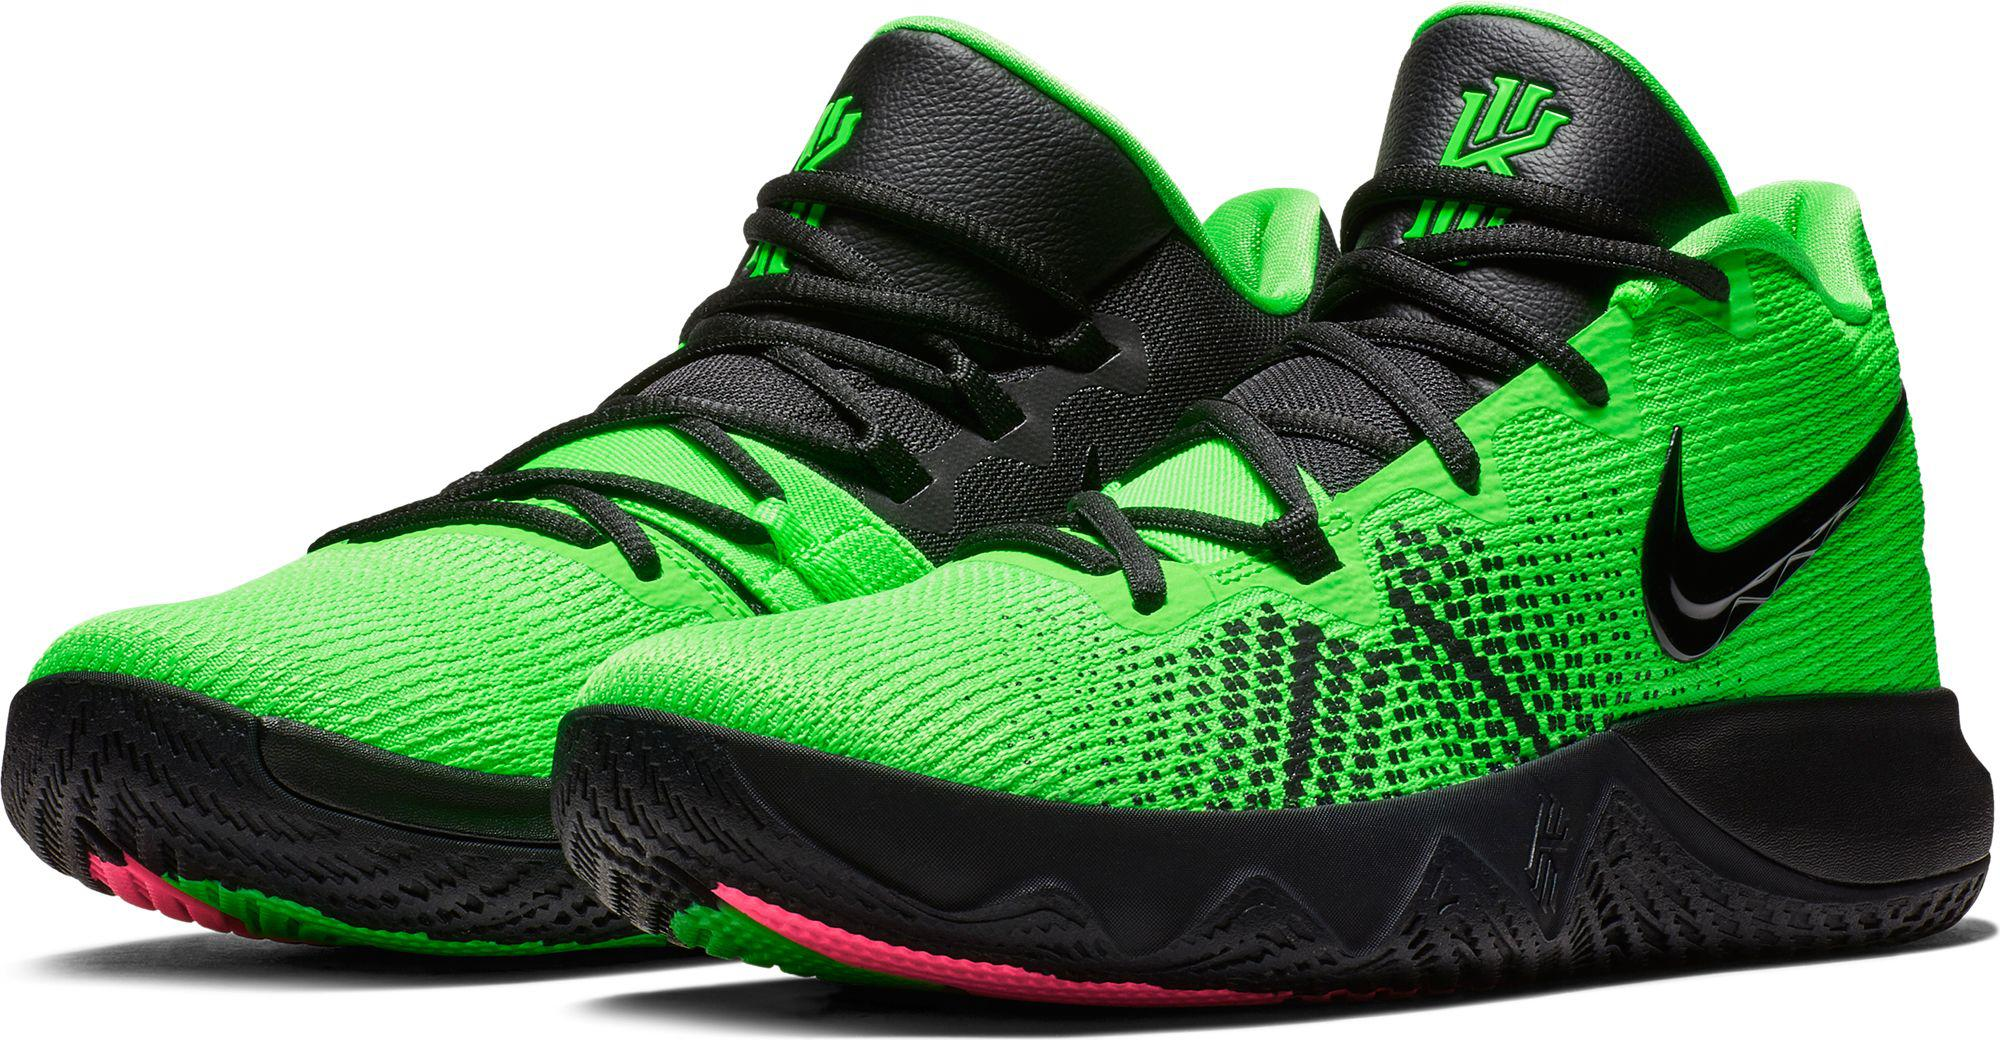 16adf570e70 Nike Kyrie Flytrap Basketball Shoes in Green for Men - Lyst